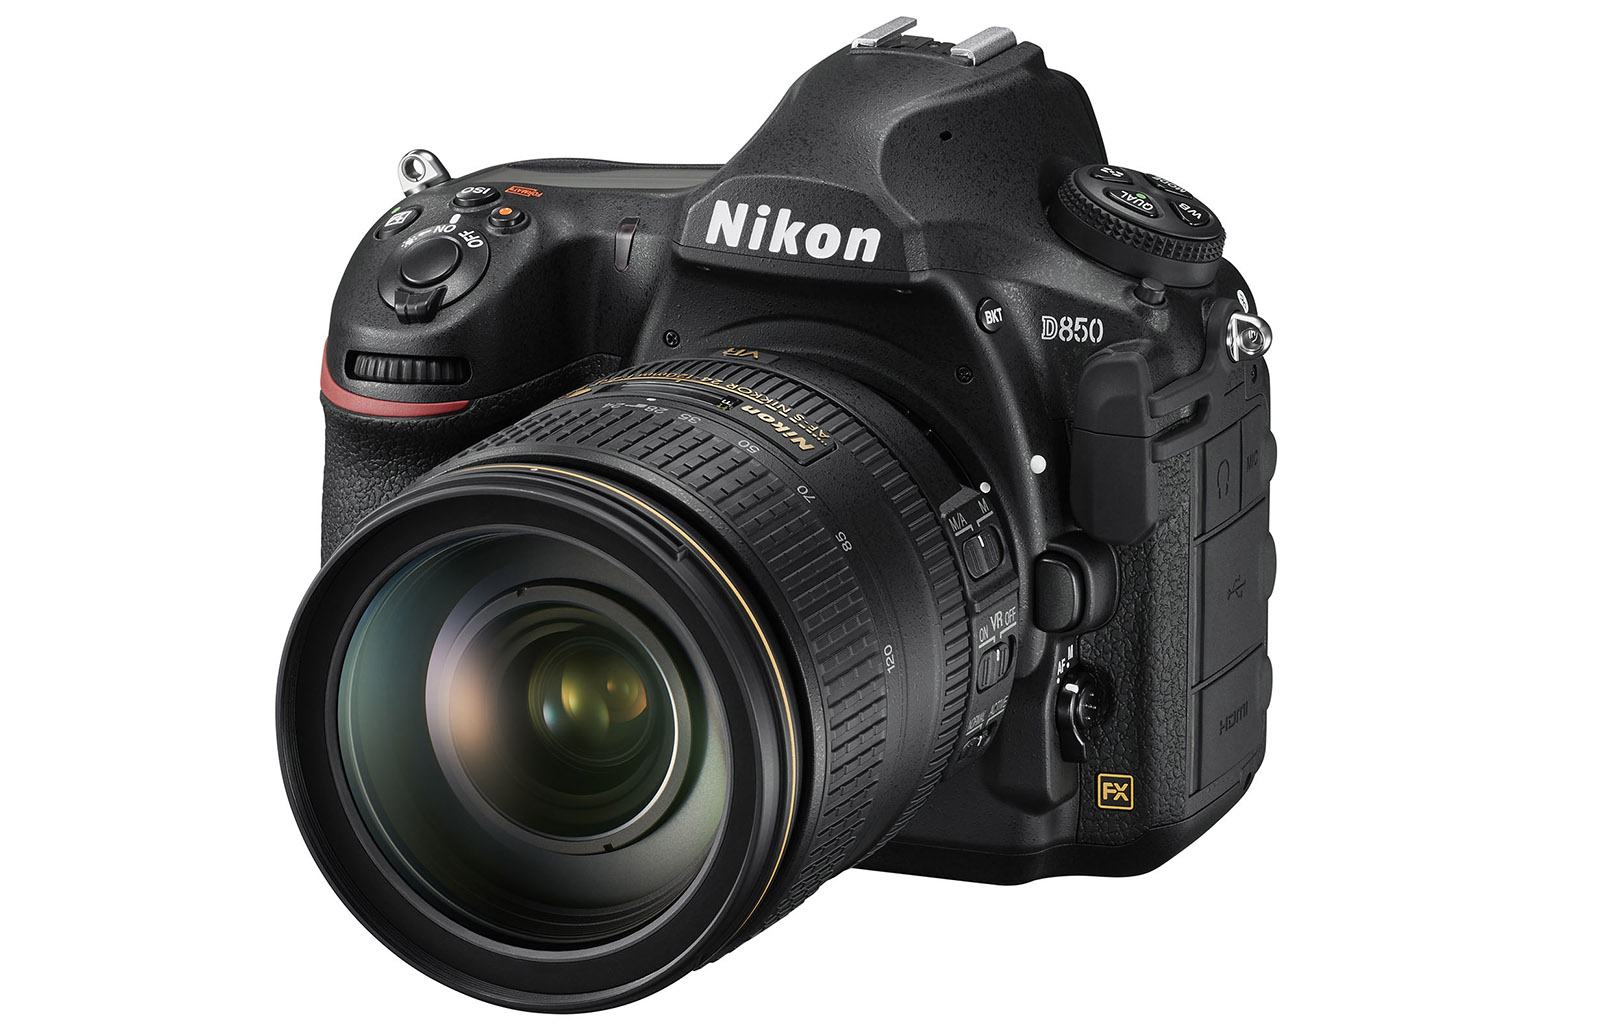 Nikon\'s D850 DSLR blends speed with insane resolution